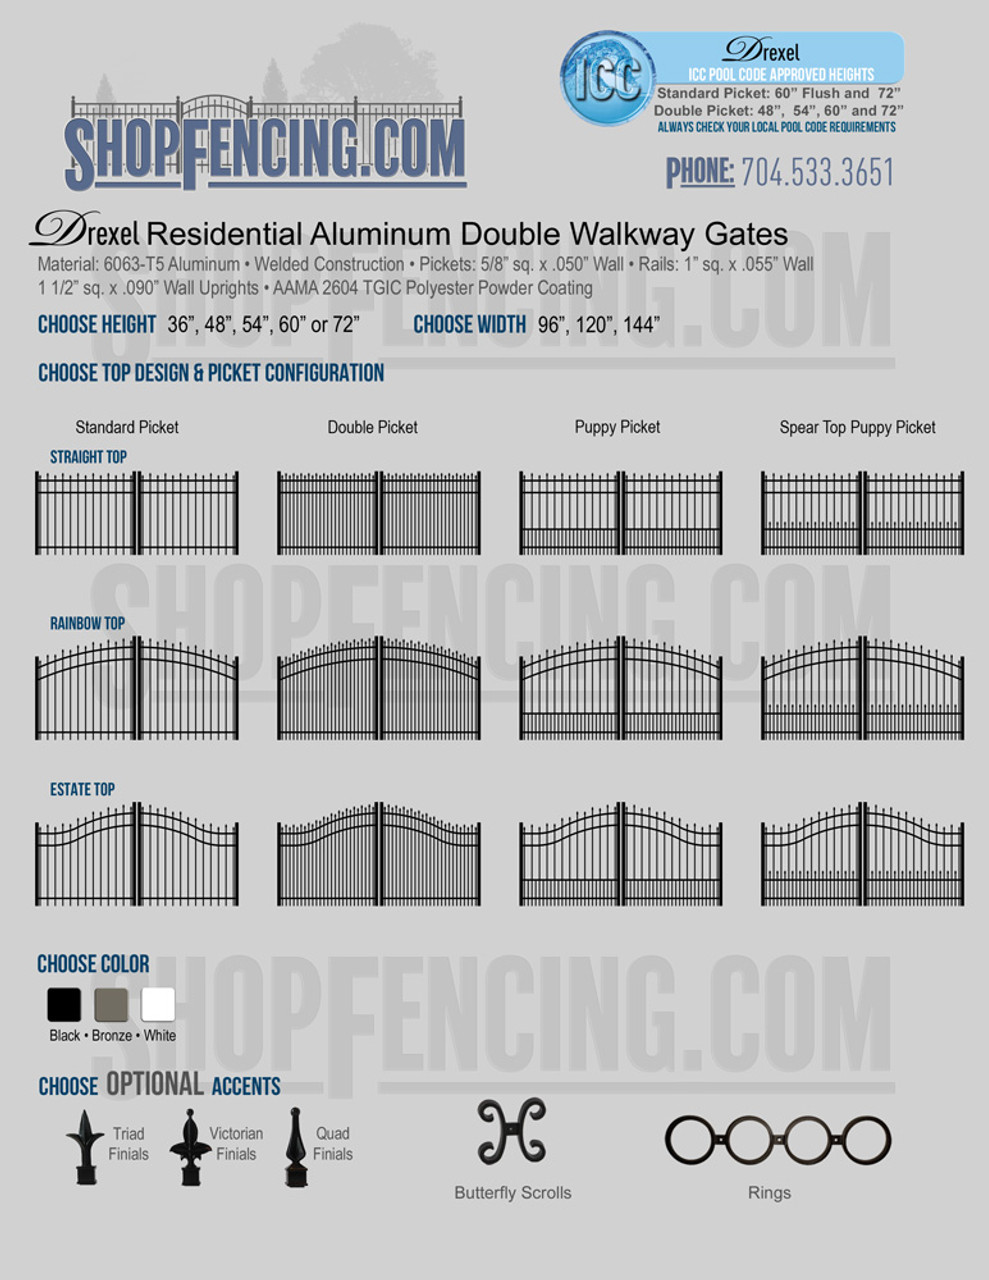 Residential Drexel Aluminum Double Walkway Gates From ShopFencing.com